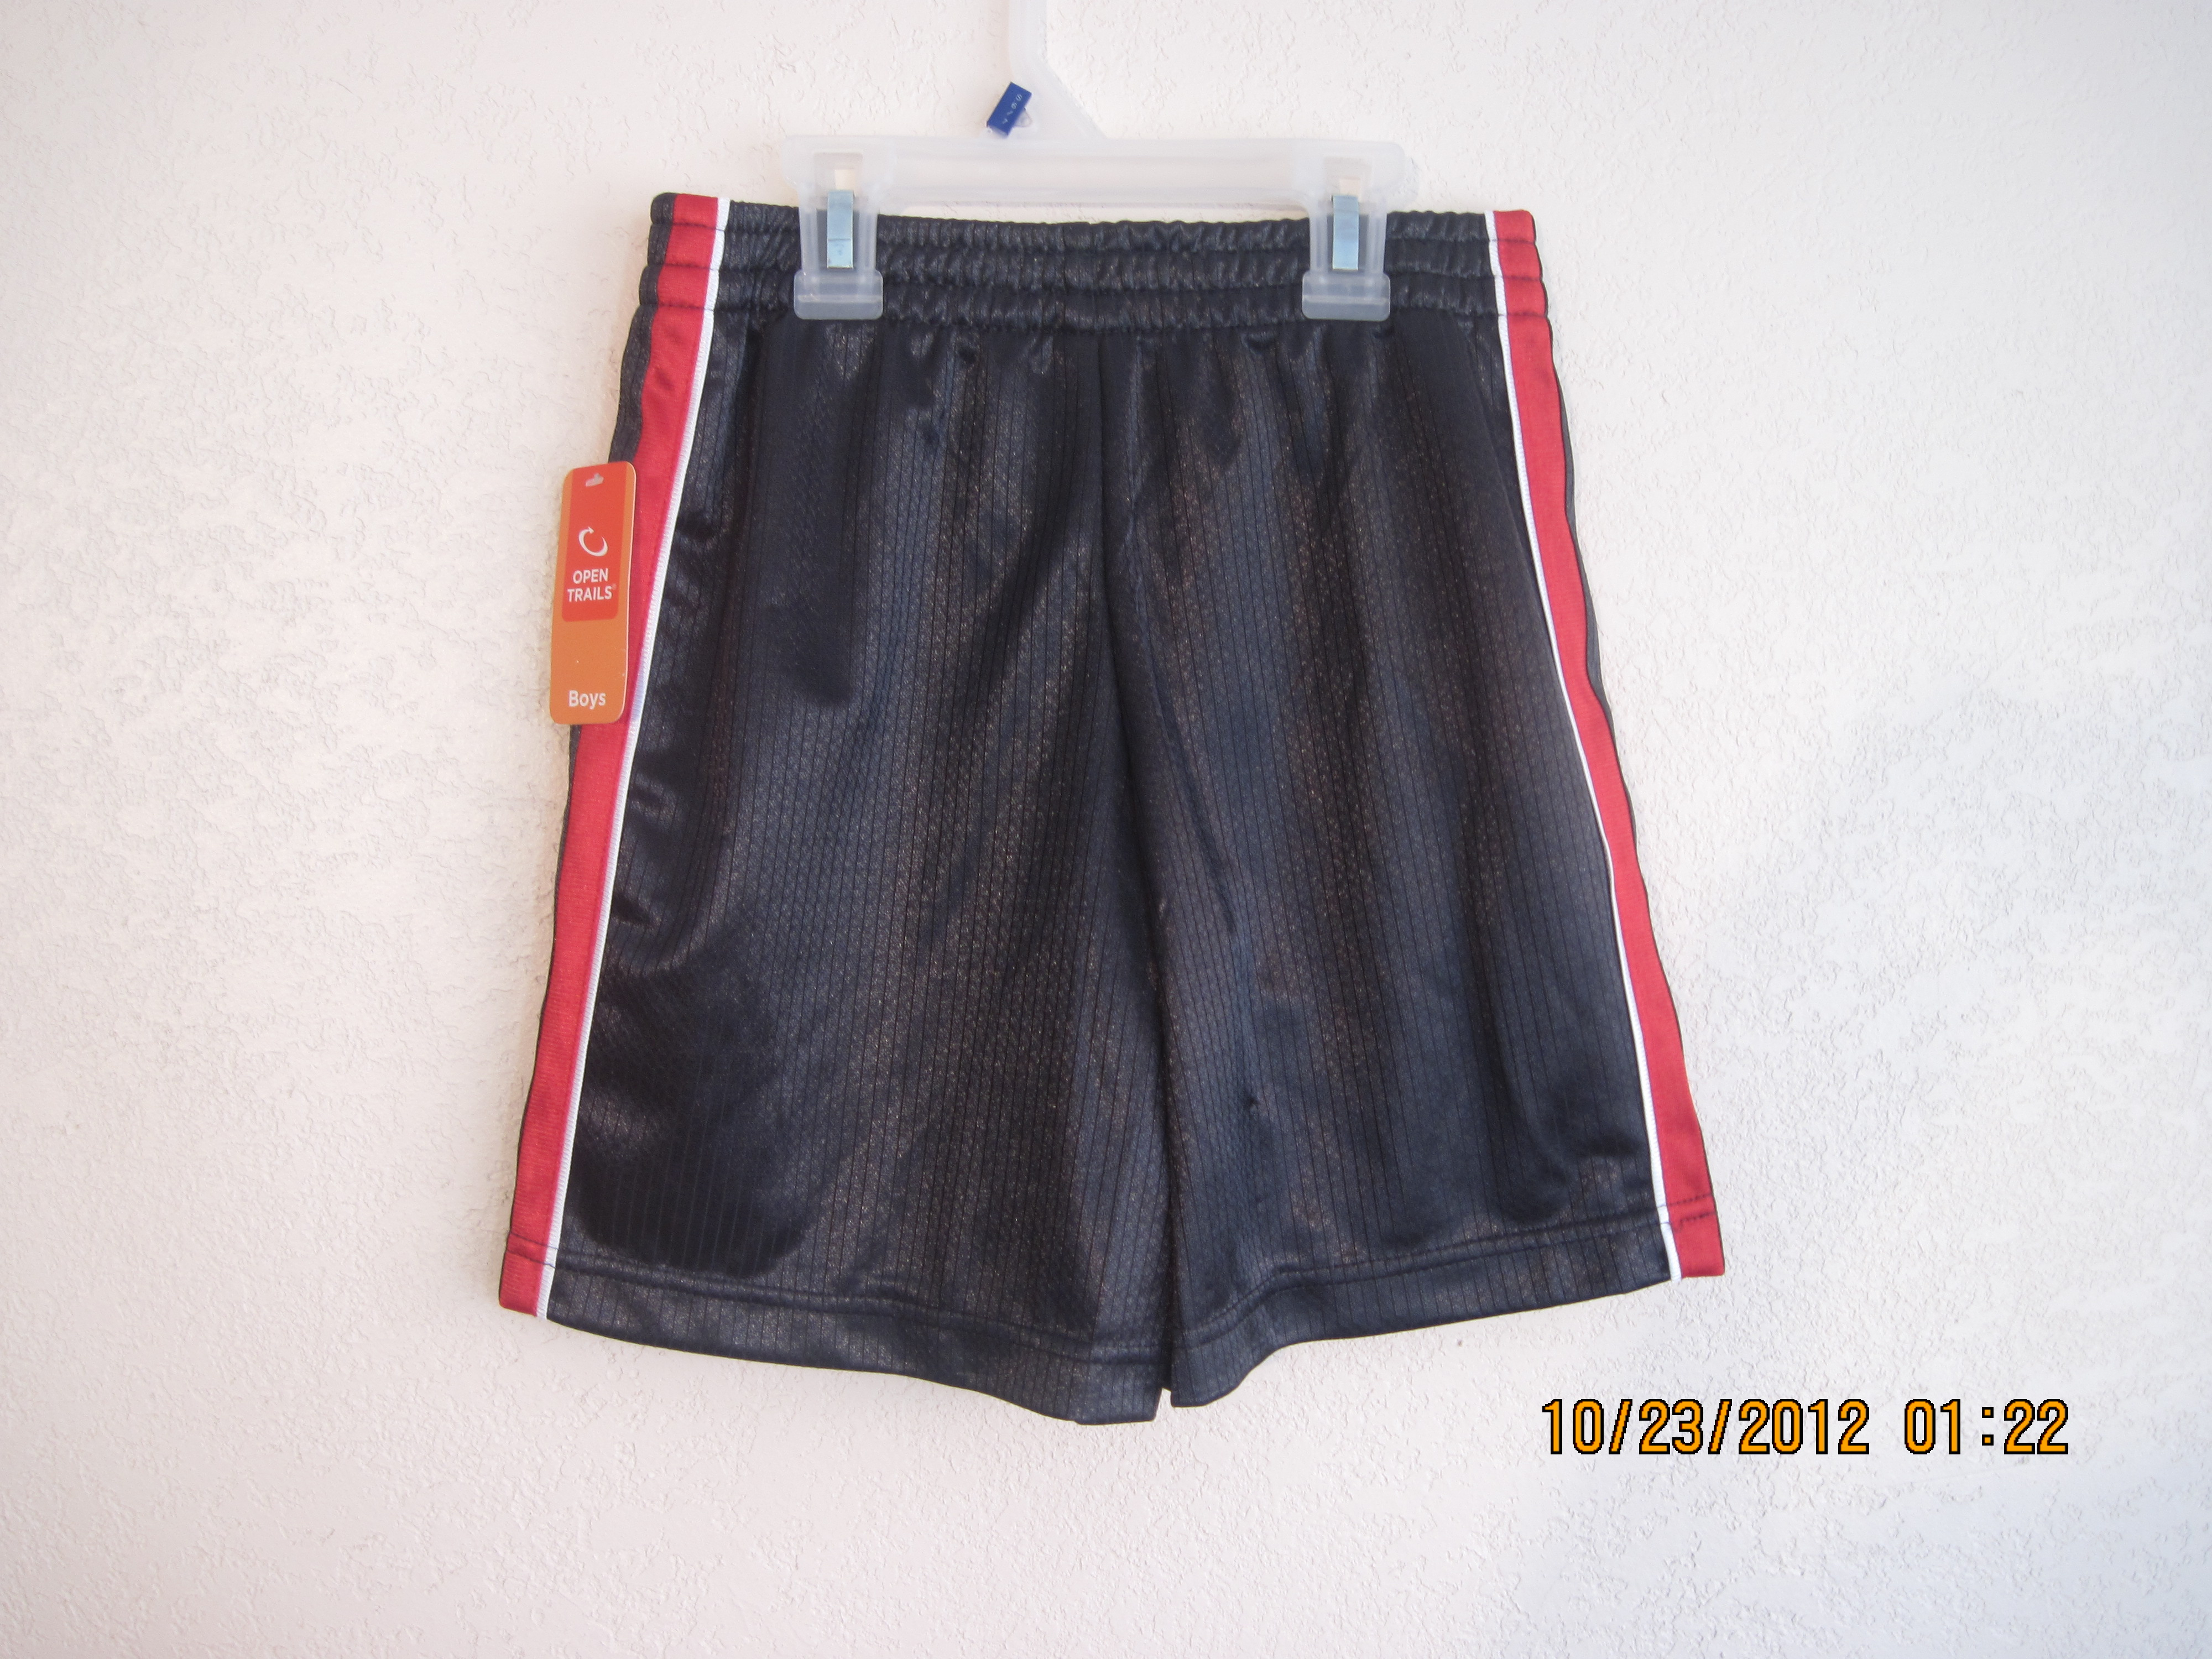 Open Trails Sz XS4-5 Mesh Shorts Gray, Red/White/Black down